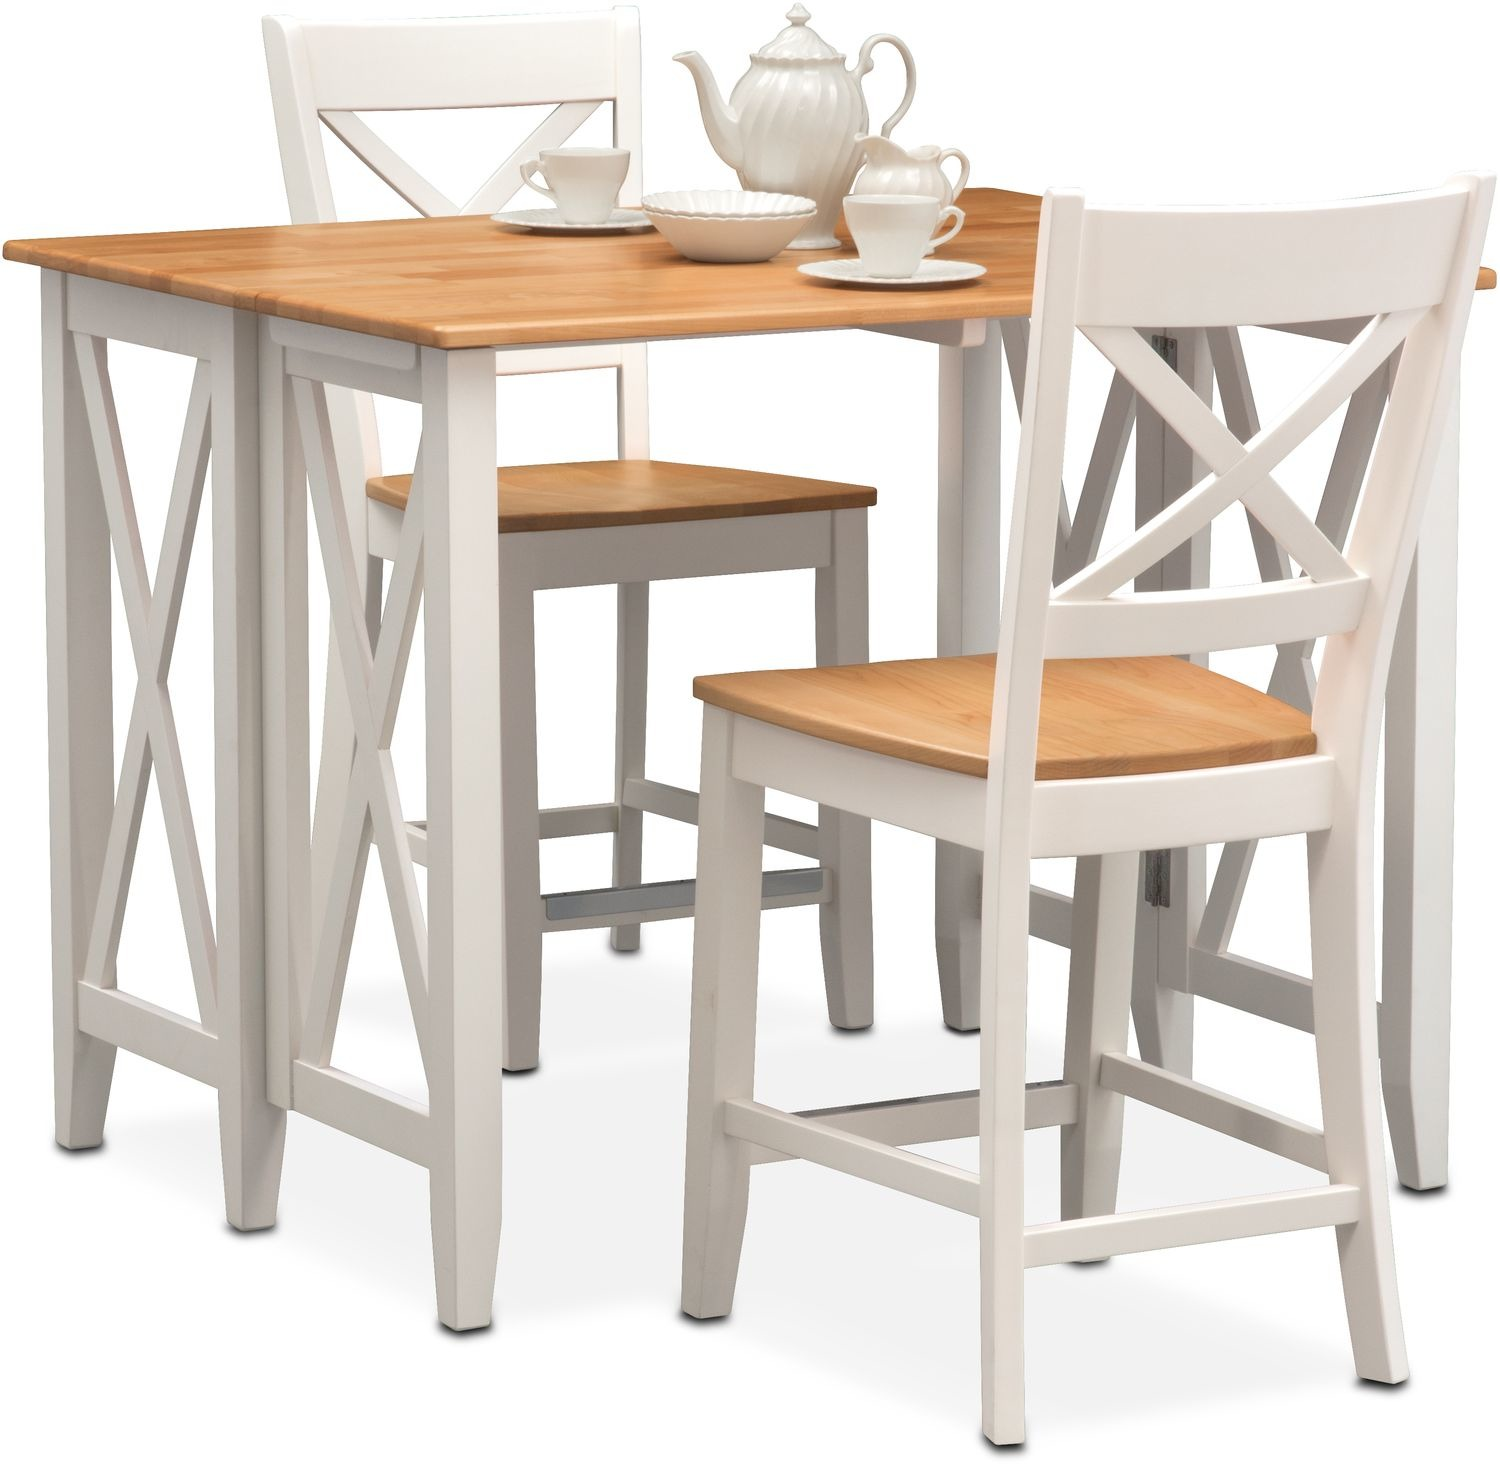 Nantucket Breakfast Bar and 2 Counter-Height Side Chairs - Maple and